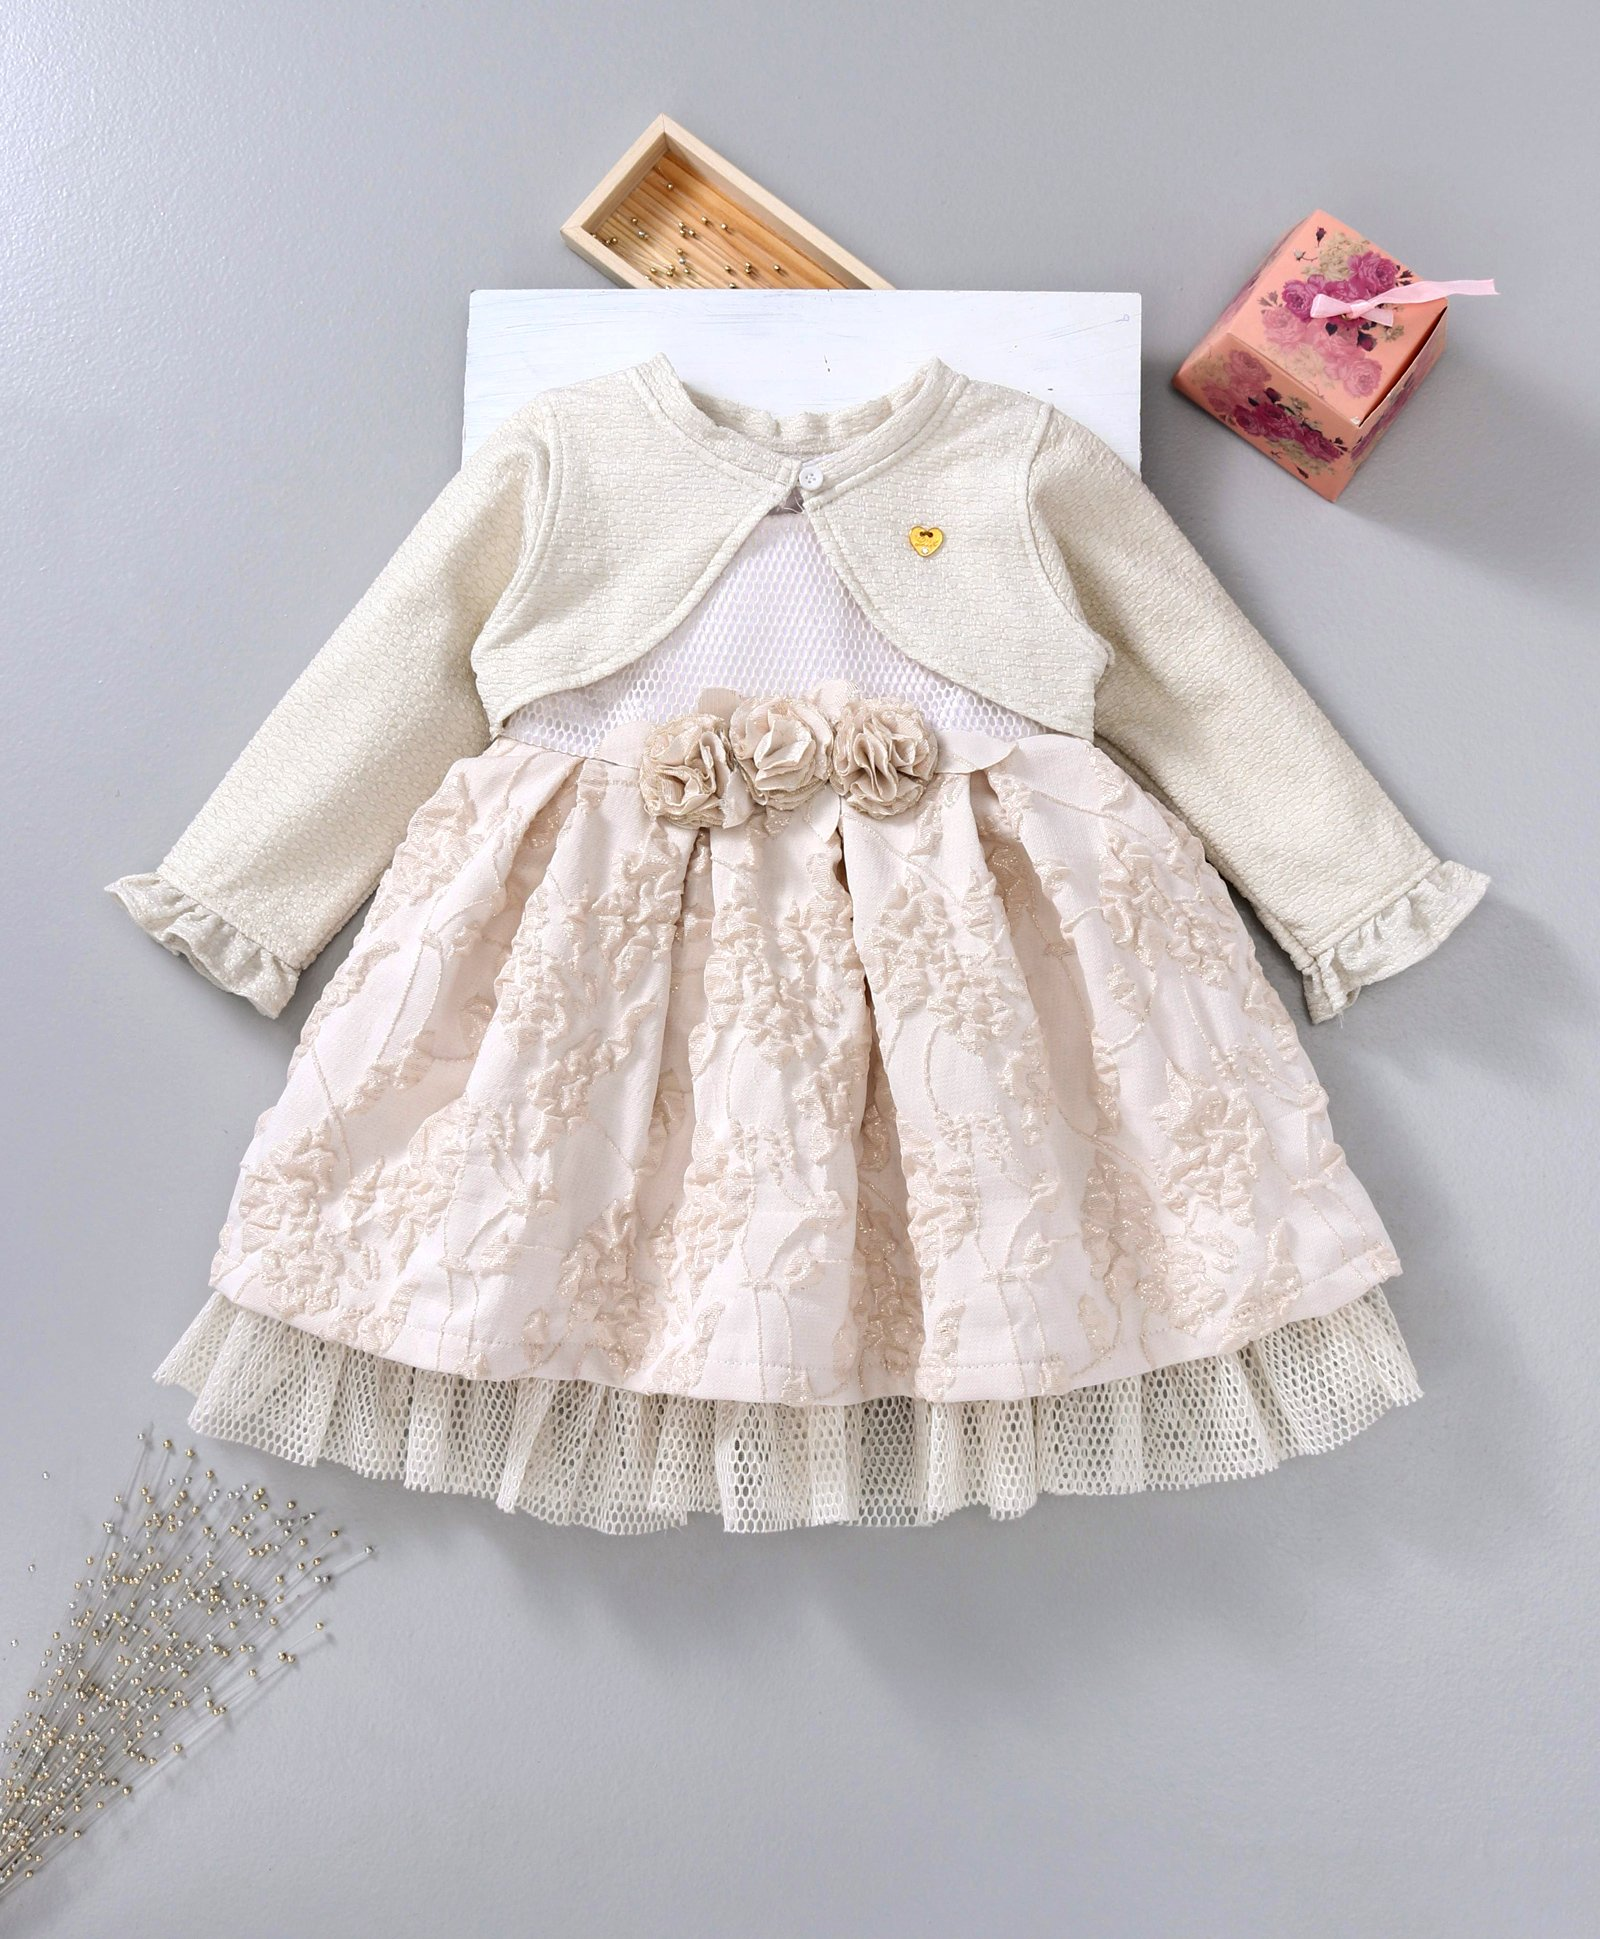 7f1f506253ce Buy Little Kangaroos Sleeveless Frock With Shrug Floral Corsage ...